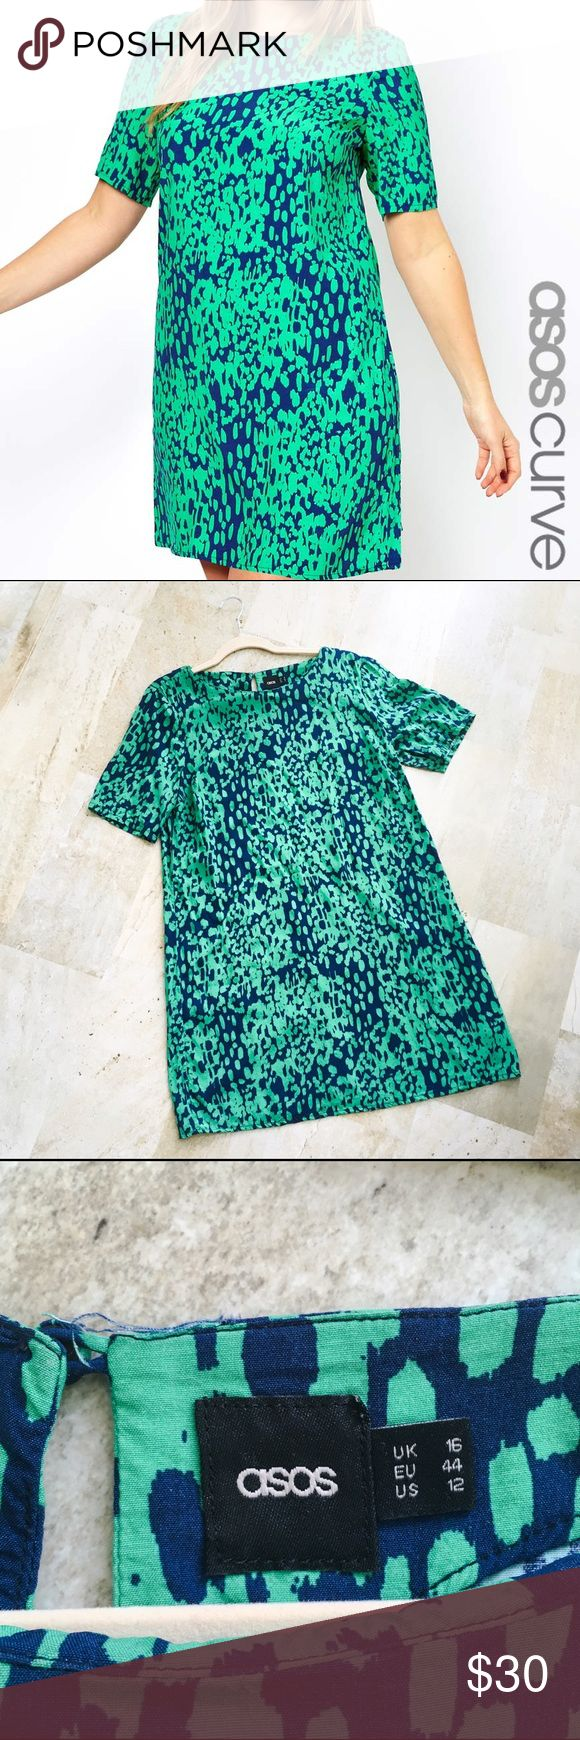 Asos Curve Blue and Green Leopard Shift Dress This is a gently used Asos Curve Blue and Green Leopard Shift Dress. In excellent condition with minimal signs of wear. ASOS Curve Dresses